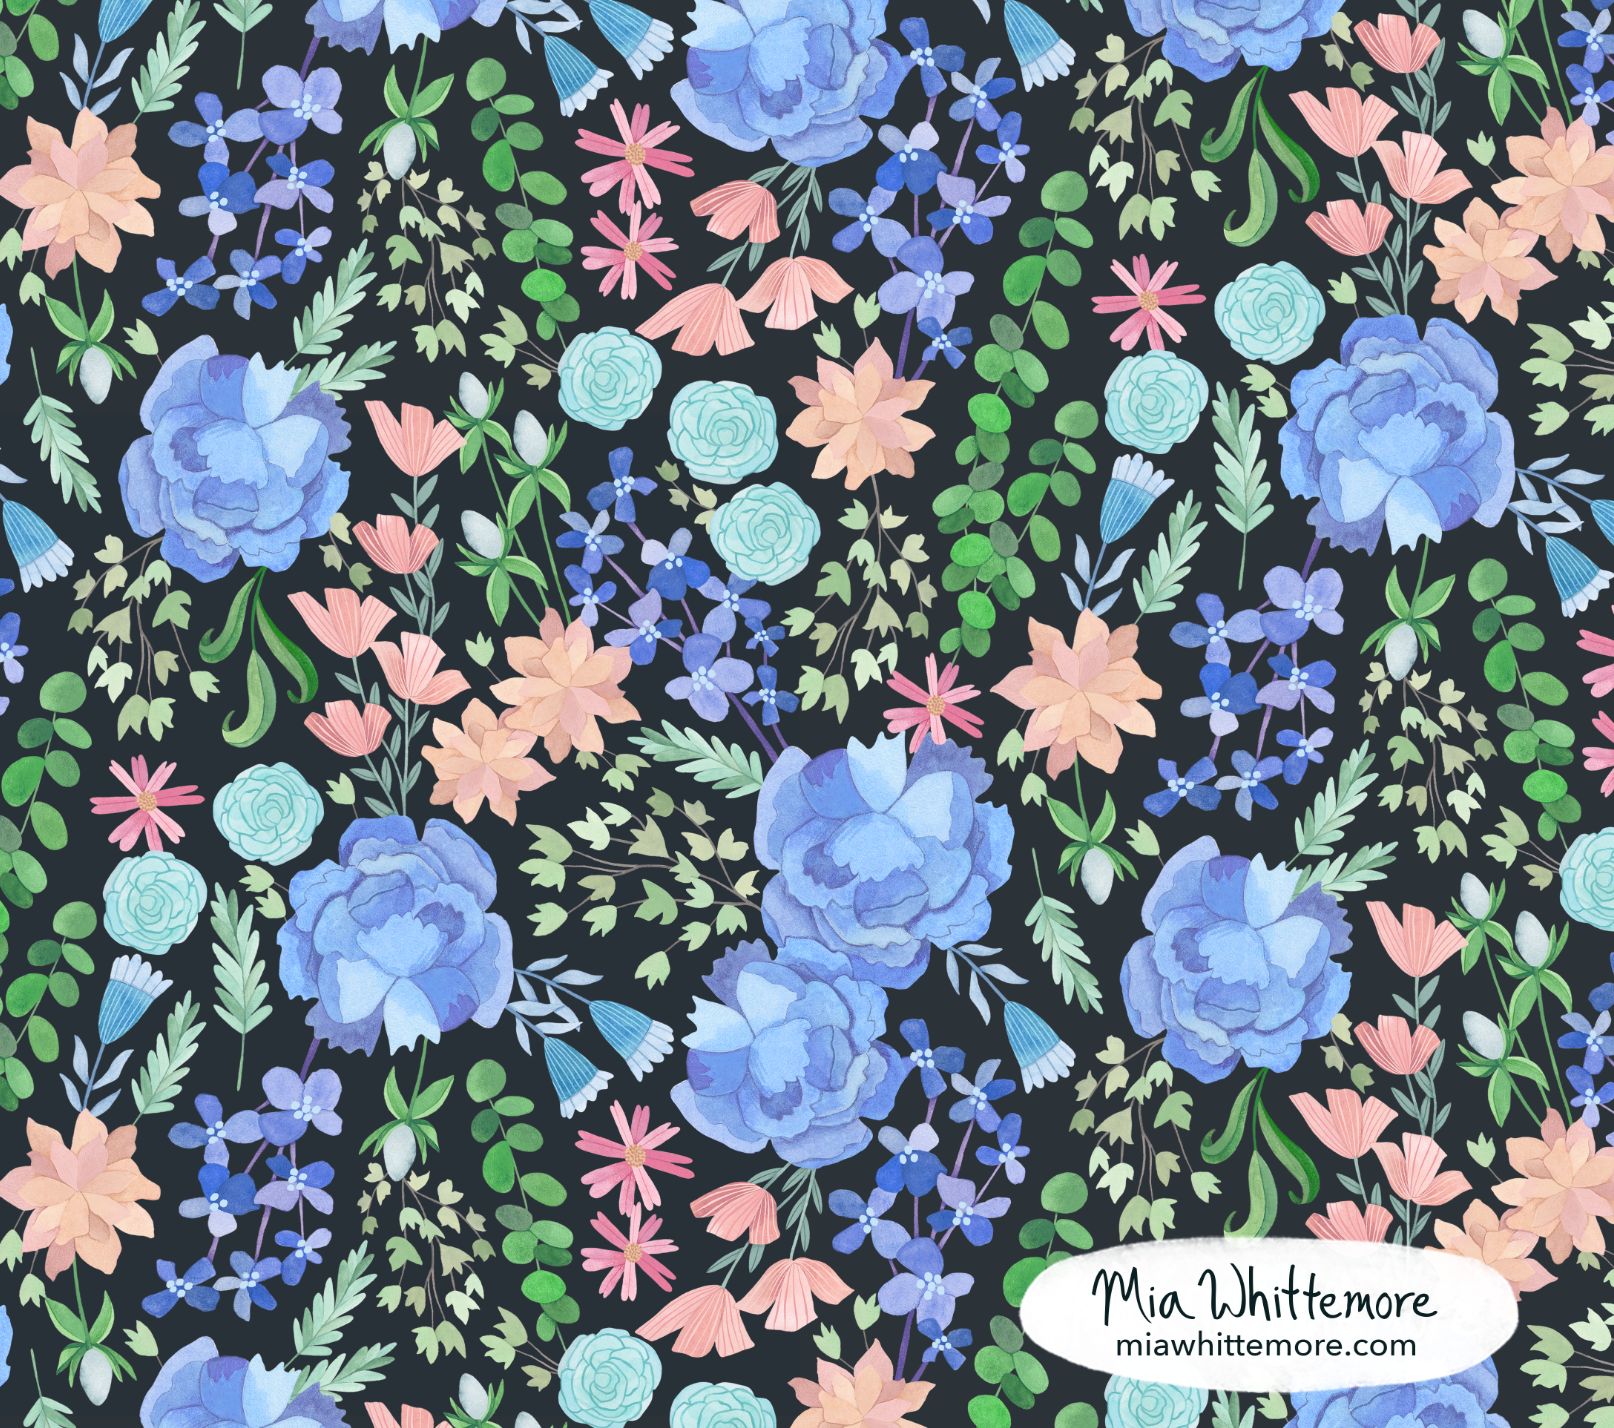 Mia Whittemore Nouveau Floral.png